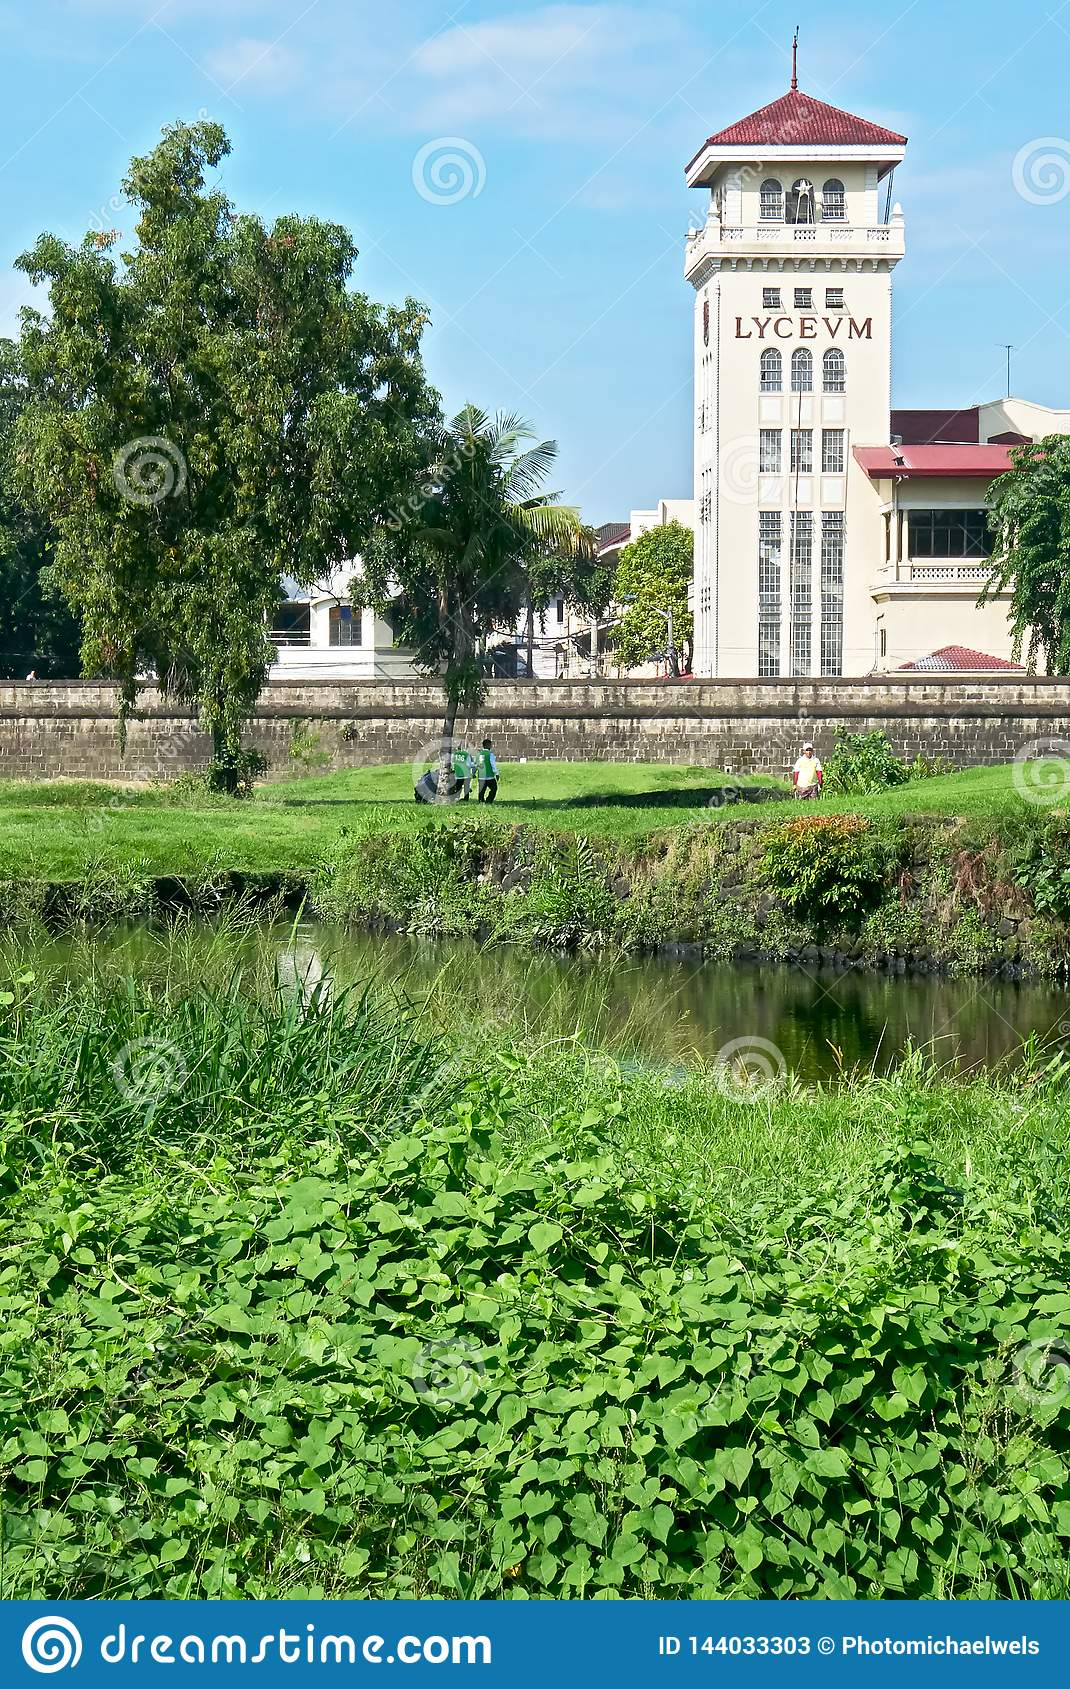 Golf course in front Intramuros wall and Lyceum University